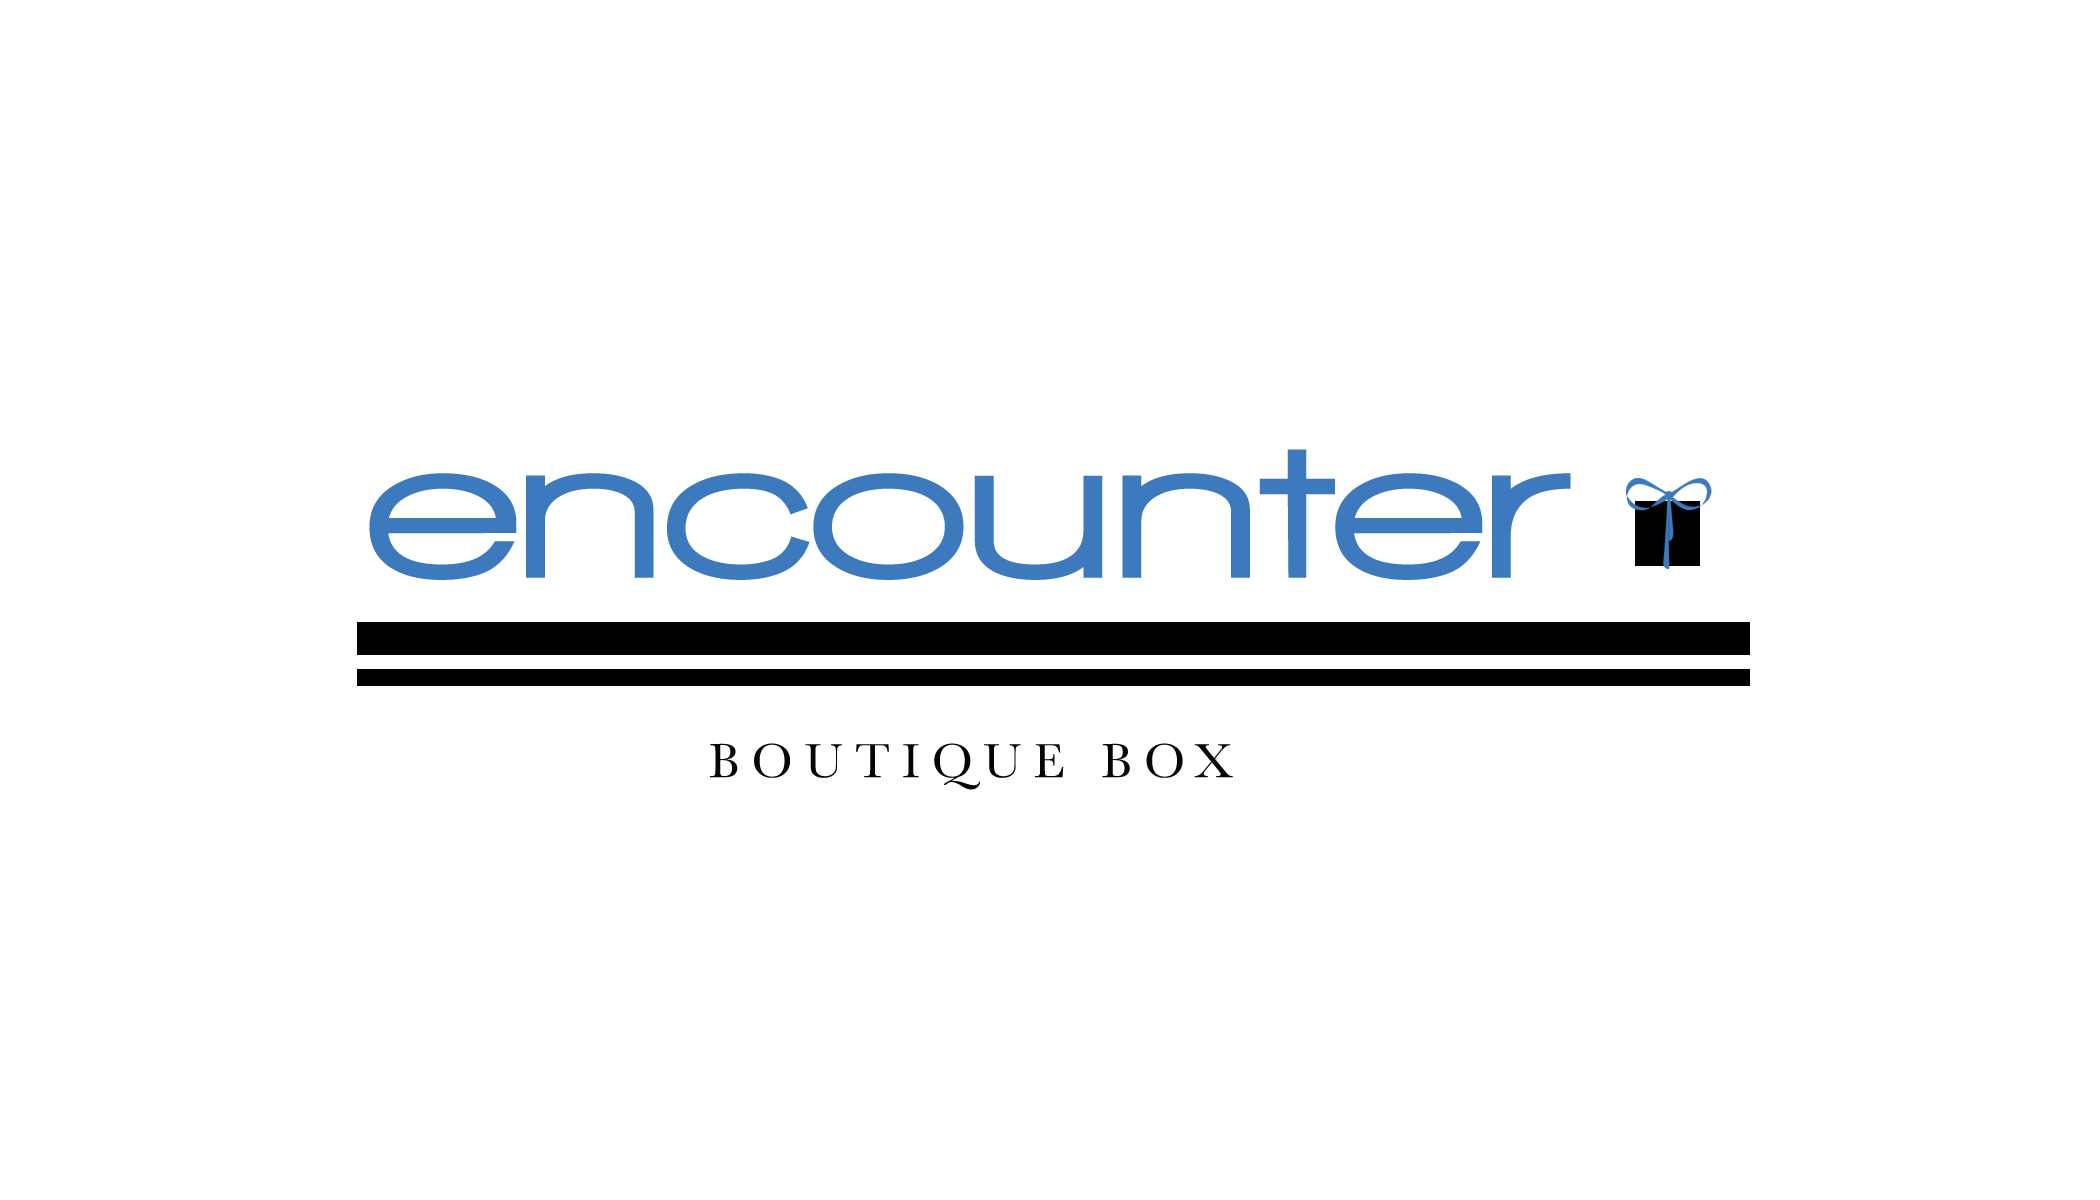 Encounter Boutique -  Encounter boutique  will be located in our VIP Tent - offering high-end designer fashion with a unique personal styling experience. Learn about  Boutique  Box by  Encounter .